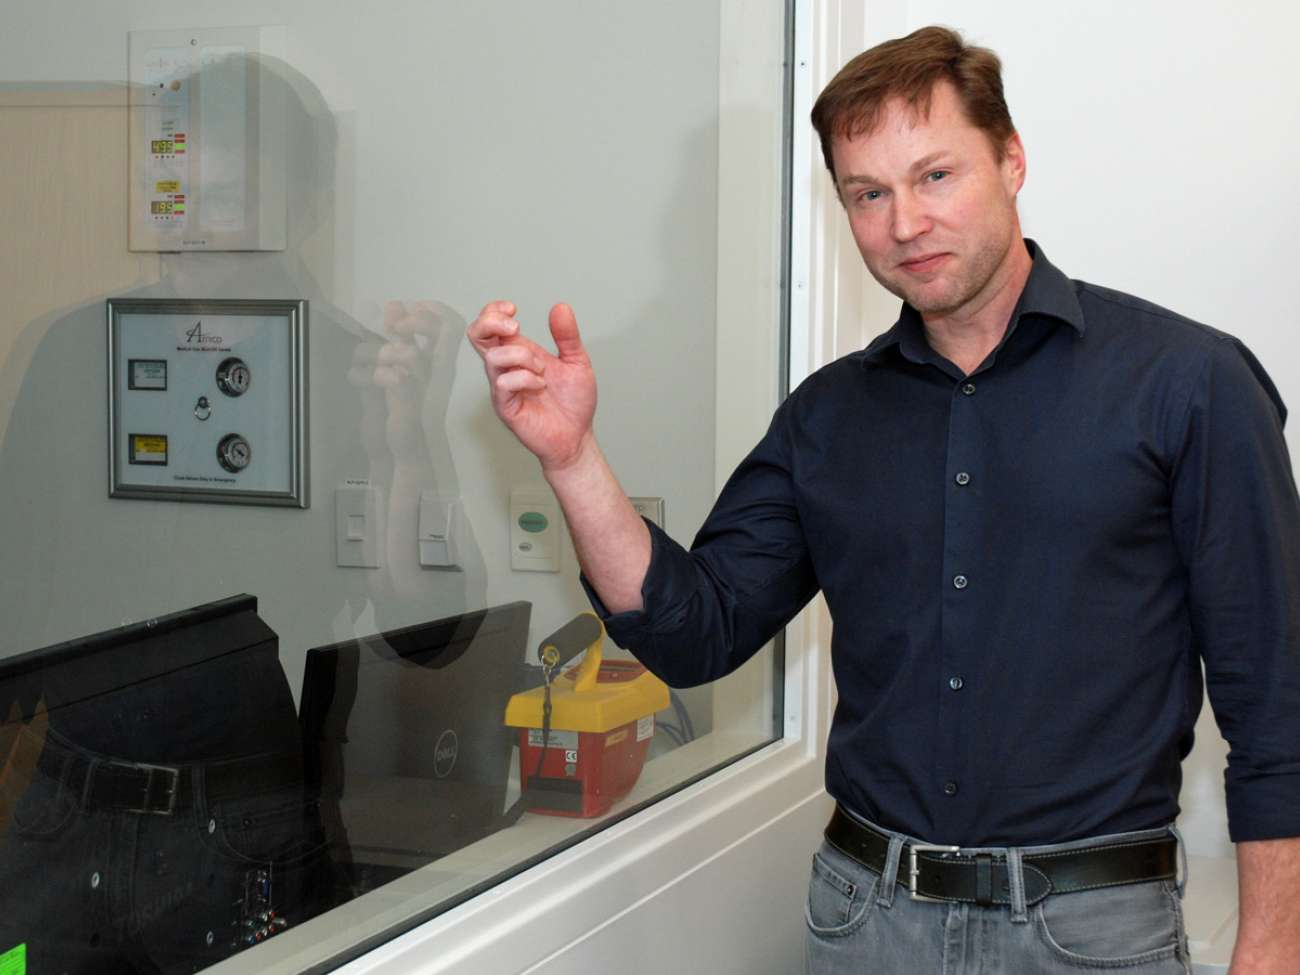 No ordinary glass: Medical physicist Andre Fleck shows the lead-infused glass separating the control and treatment rooms in the orthovoltage suite. Lead in glass, walls and doors keeps the risk of radiation exposure negligible.